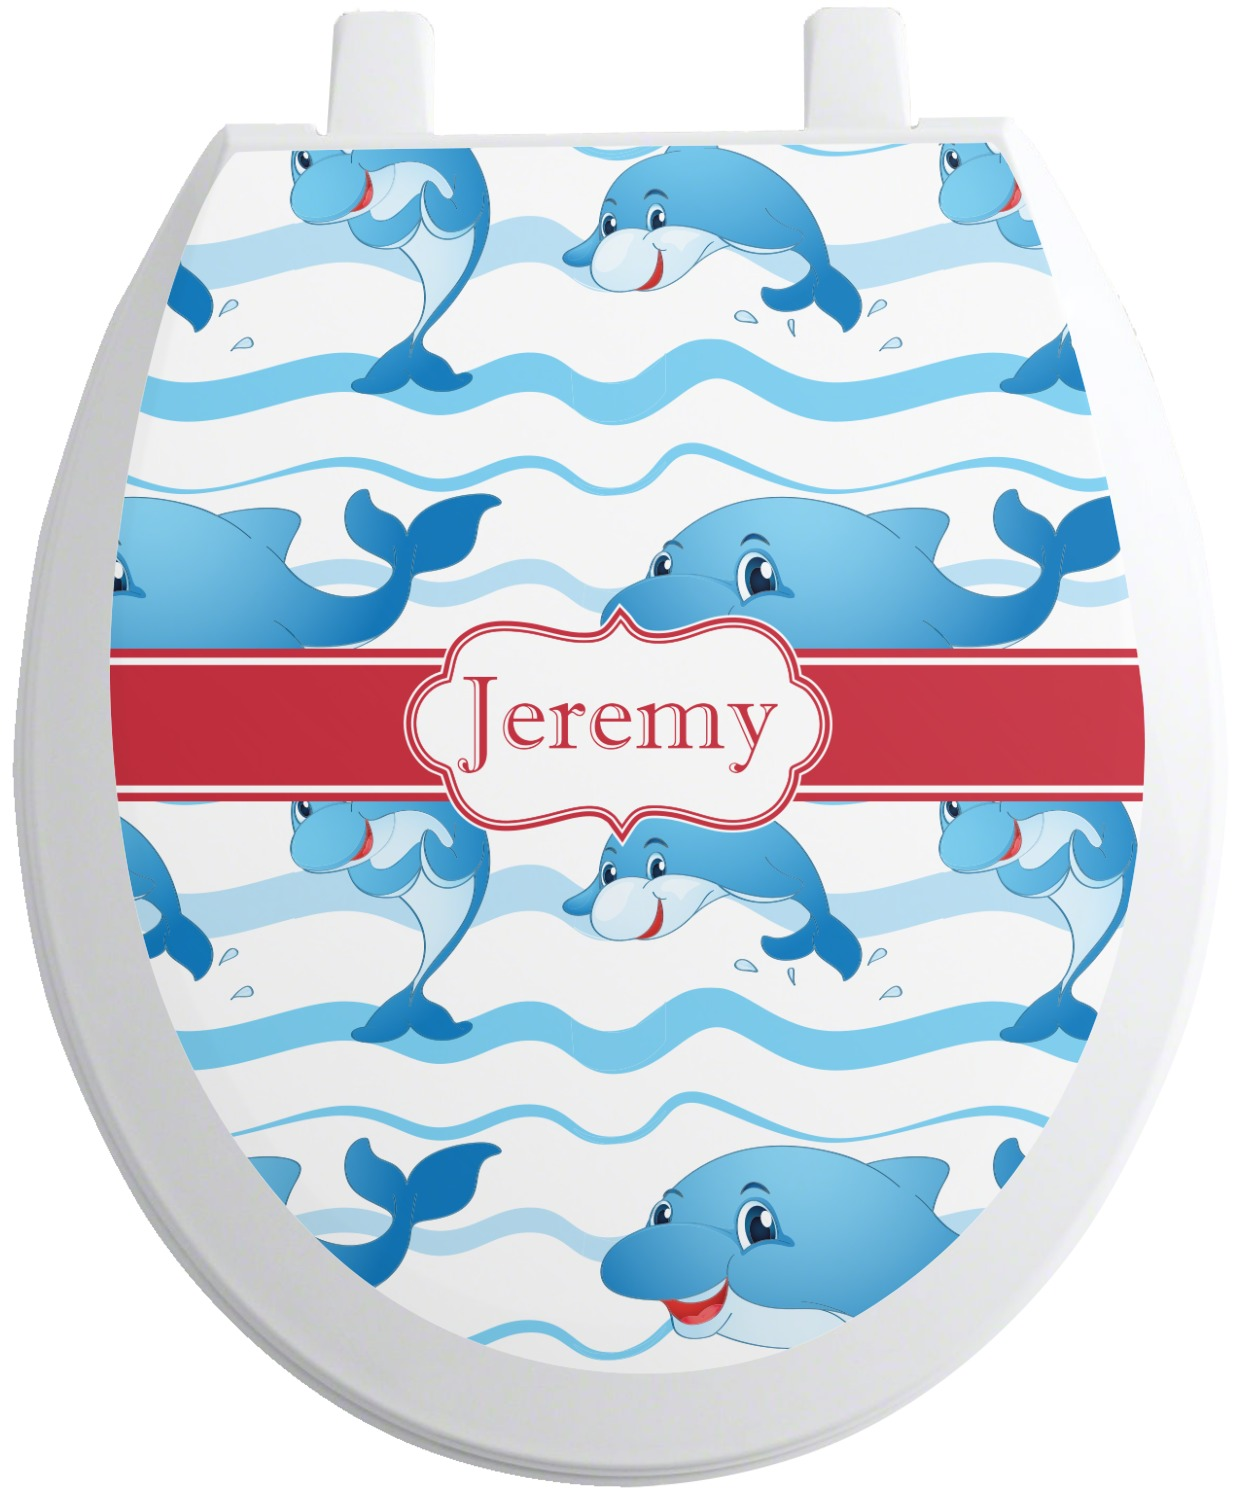 Pleasant Dolphins Toilet Seat Decal Personalized Ibusinesslaw Wood Chair Design Ideas Ibusinesslaworg